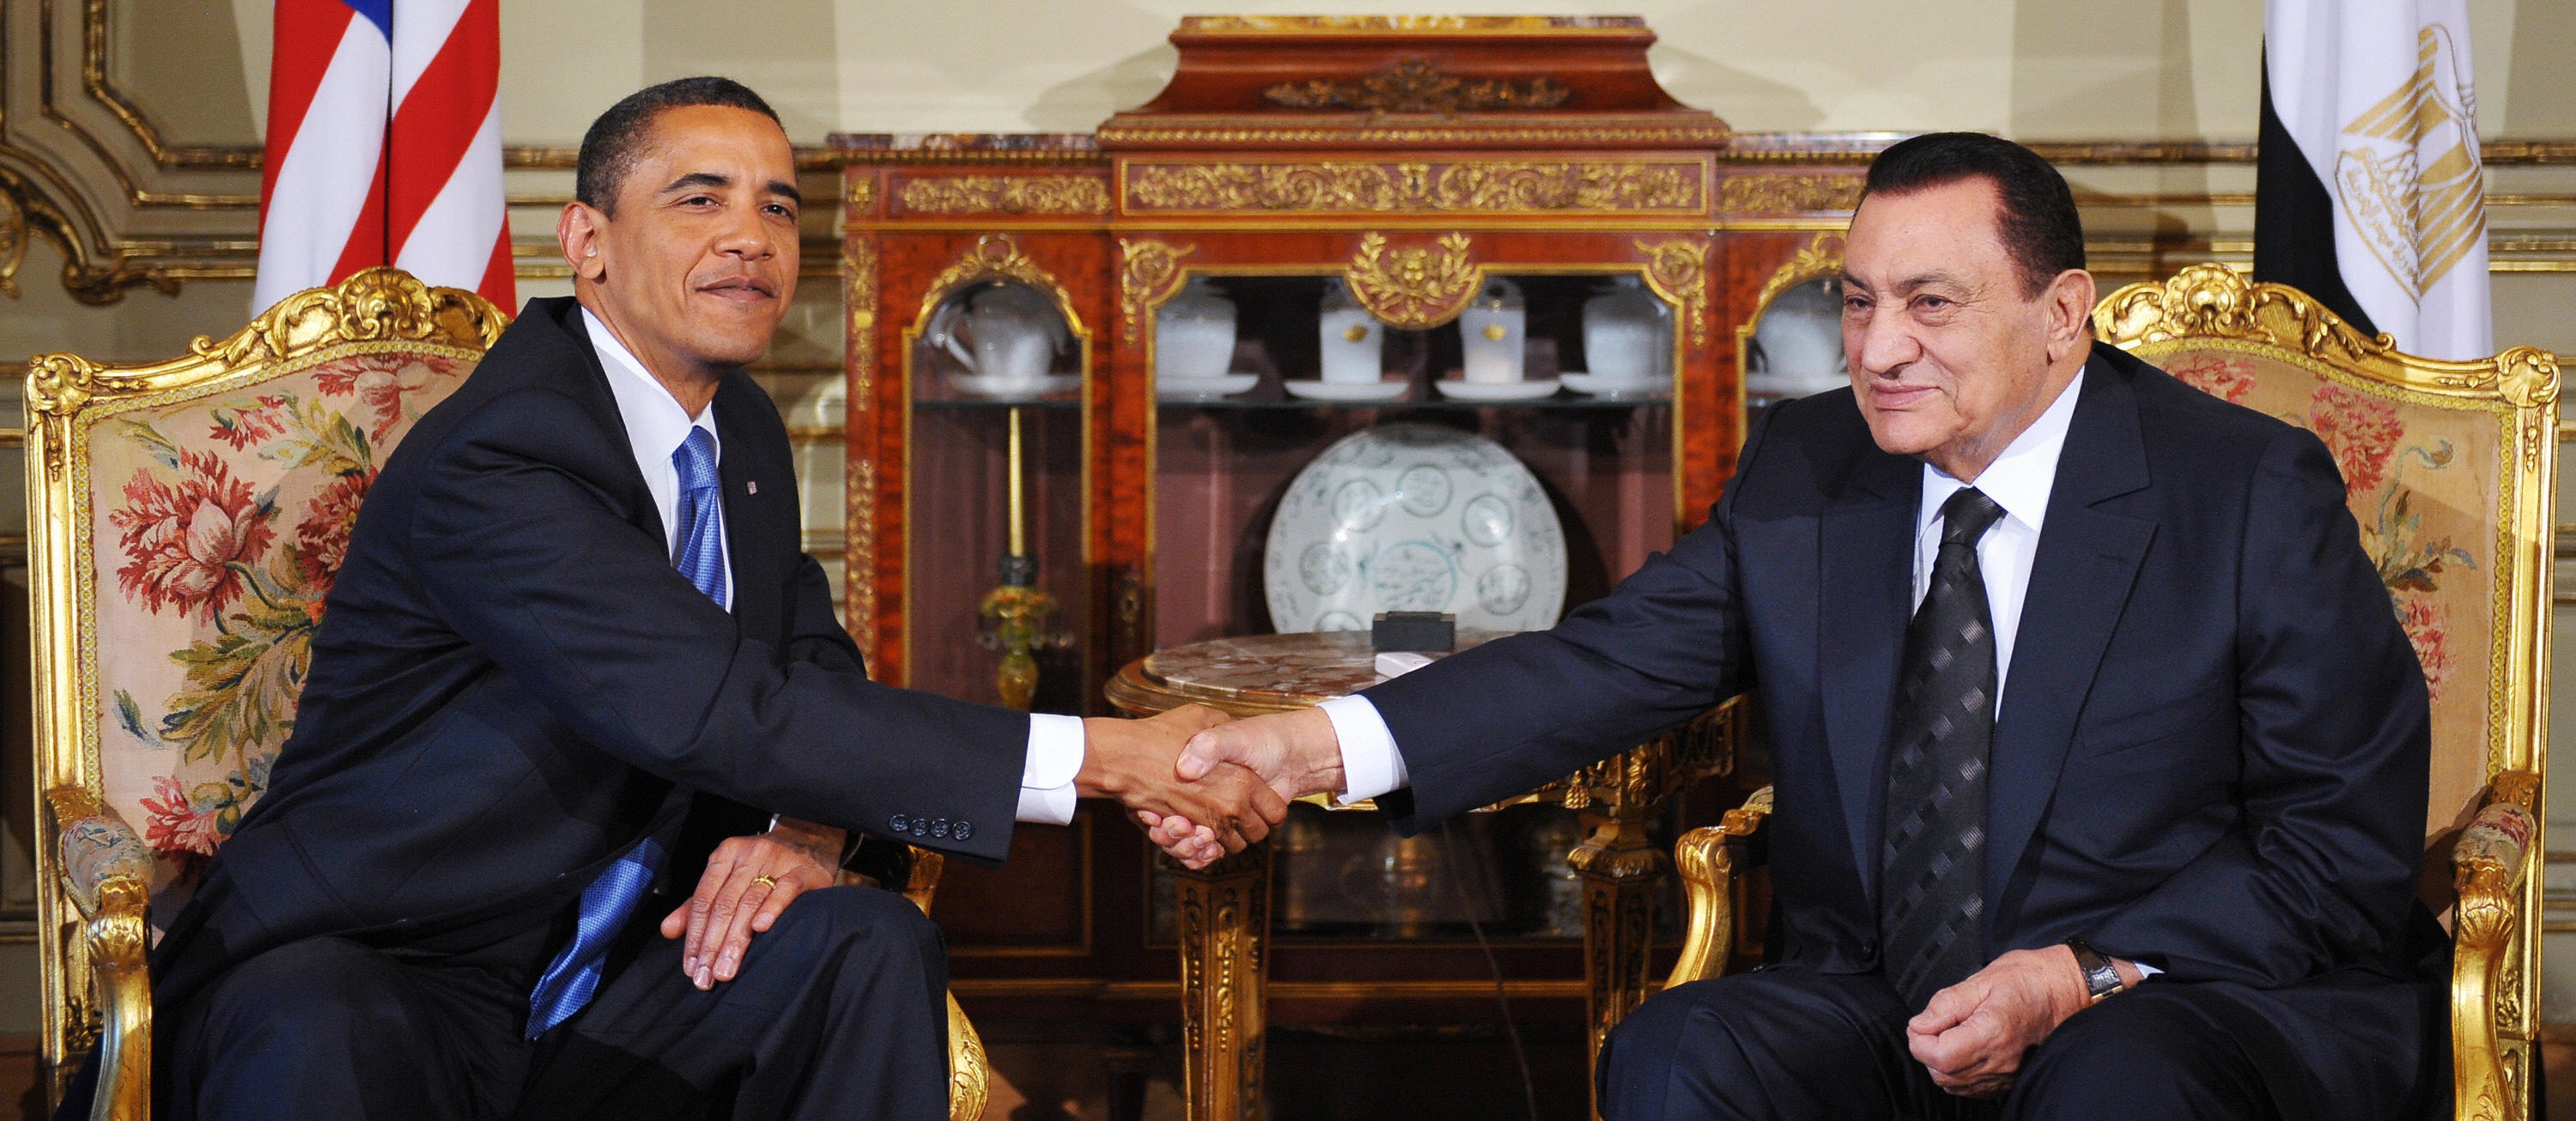 MANDEL NGAN/AFP/Getty Images. US President Barack Obama (L) shakes hands with his Egyptian counterpart Hosni Mubarak during a bilateral meeting at the presidential palace in Cairo on June 4, 2009. Obama, in Egypt to deliver a speech to the world's Muslims, held talks with his host Mubarak on how to advance stalled Middle East peace talks.